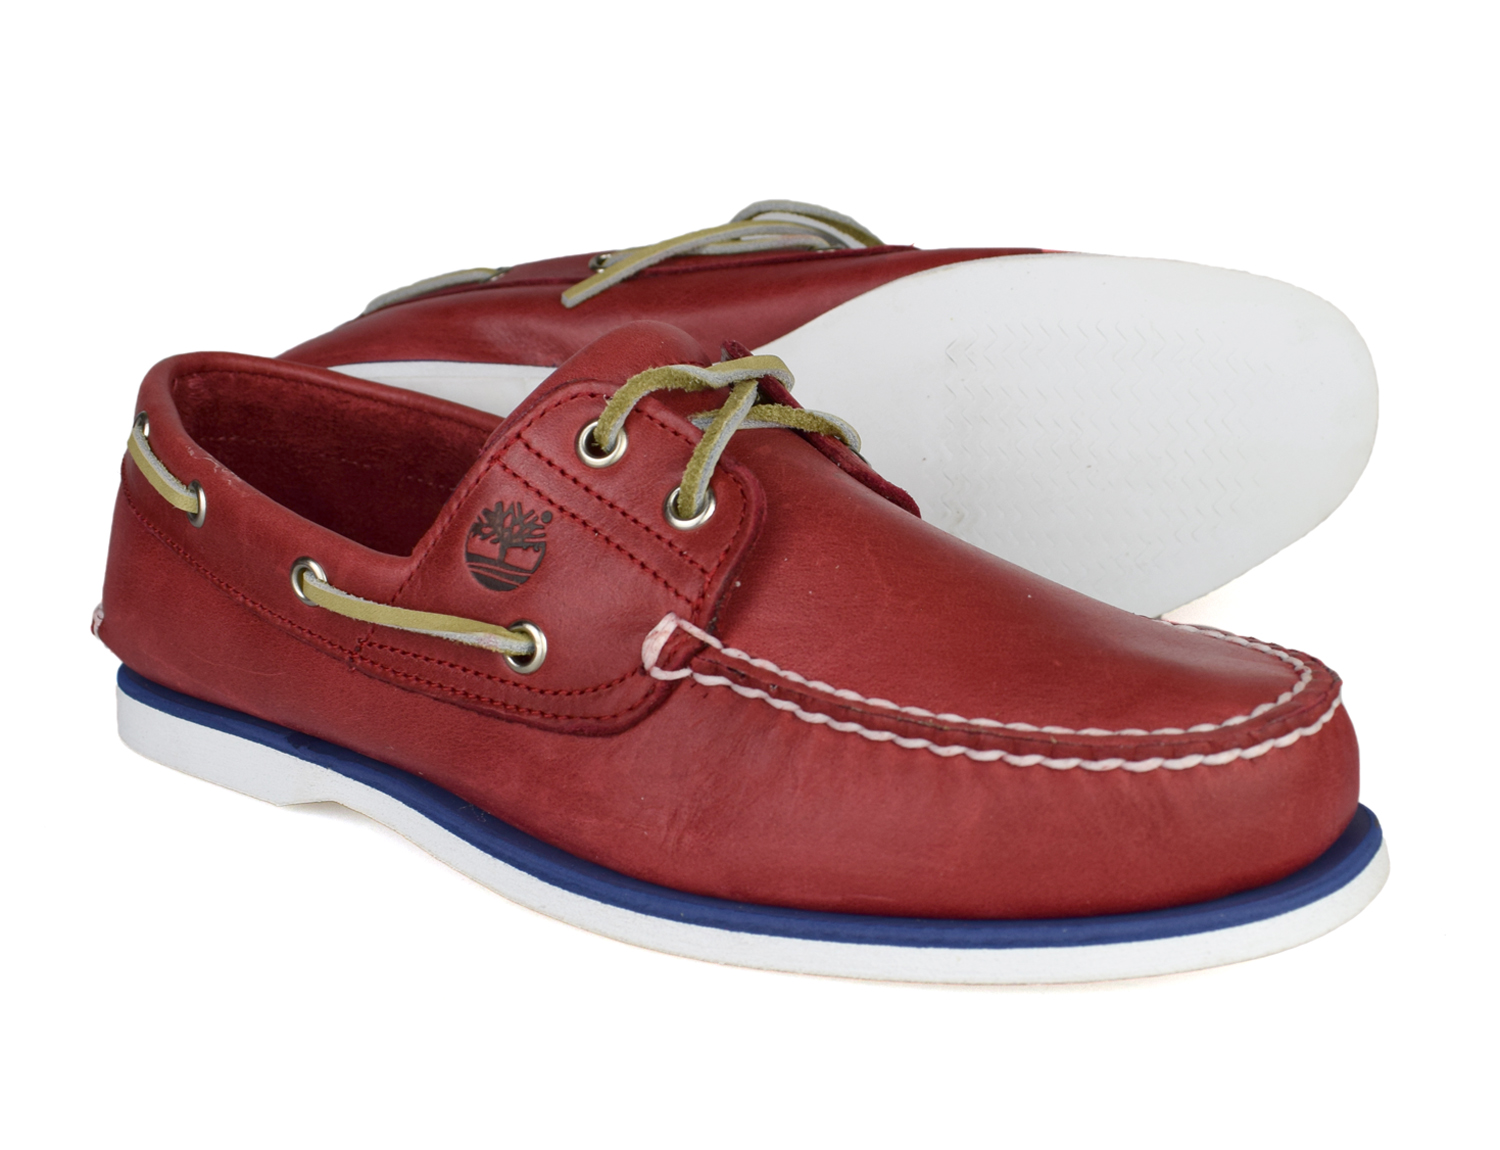 a601ee1e82f0 Timberland Classic 2 Eye Mens Red Leather Lace Up Boat Shoes 6829B ...